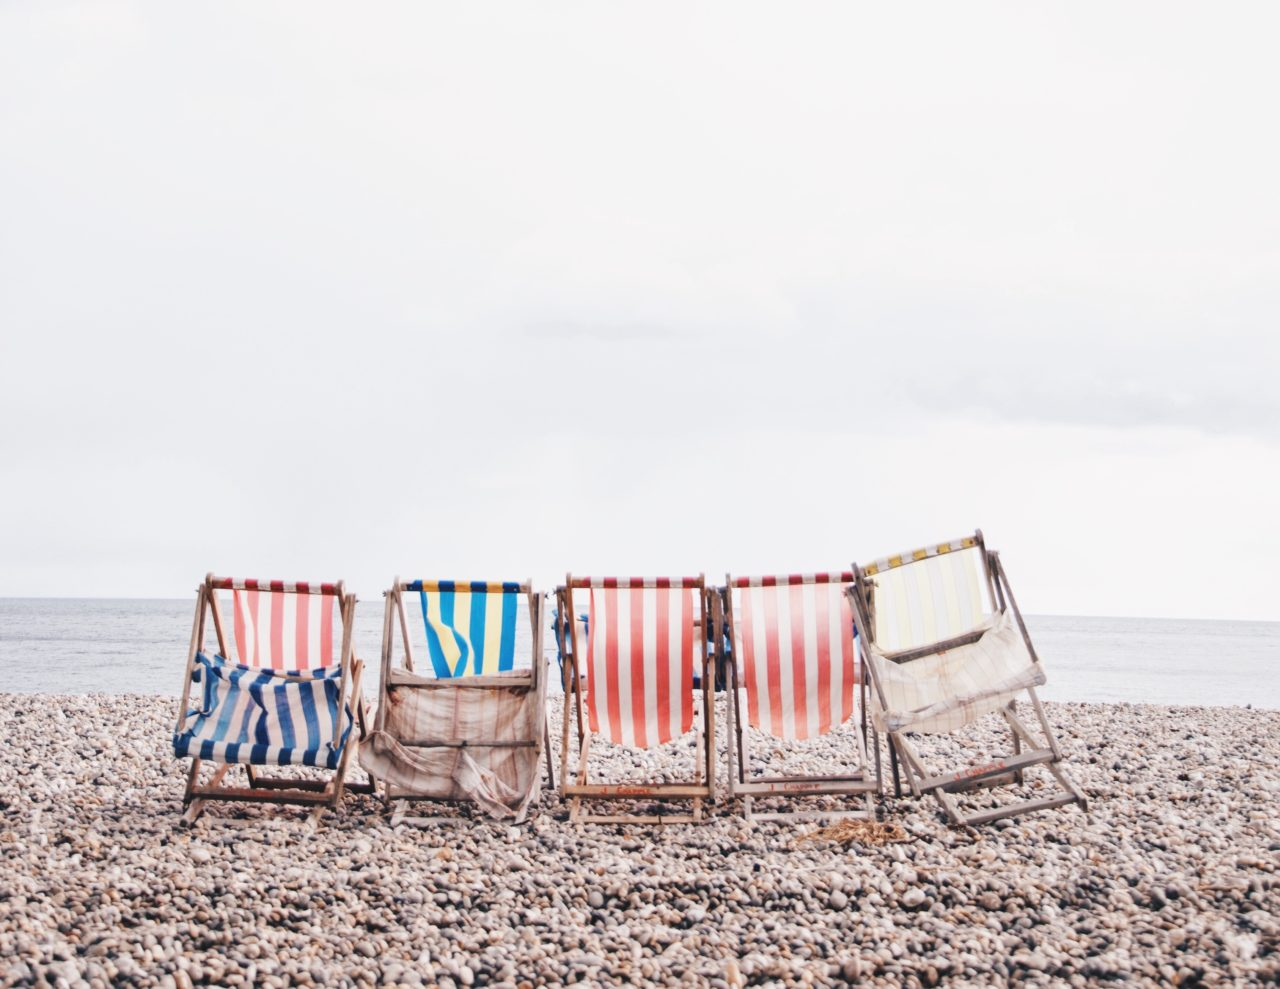 5 IDEAL TIPS FOR LONDONERS LOOKING TO MOVE TO THE SEASIDE